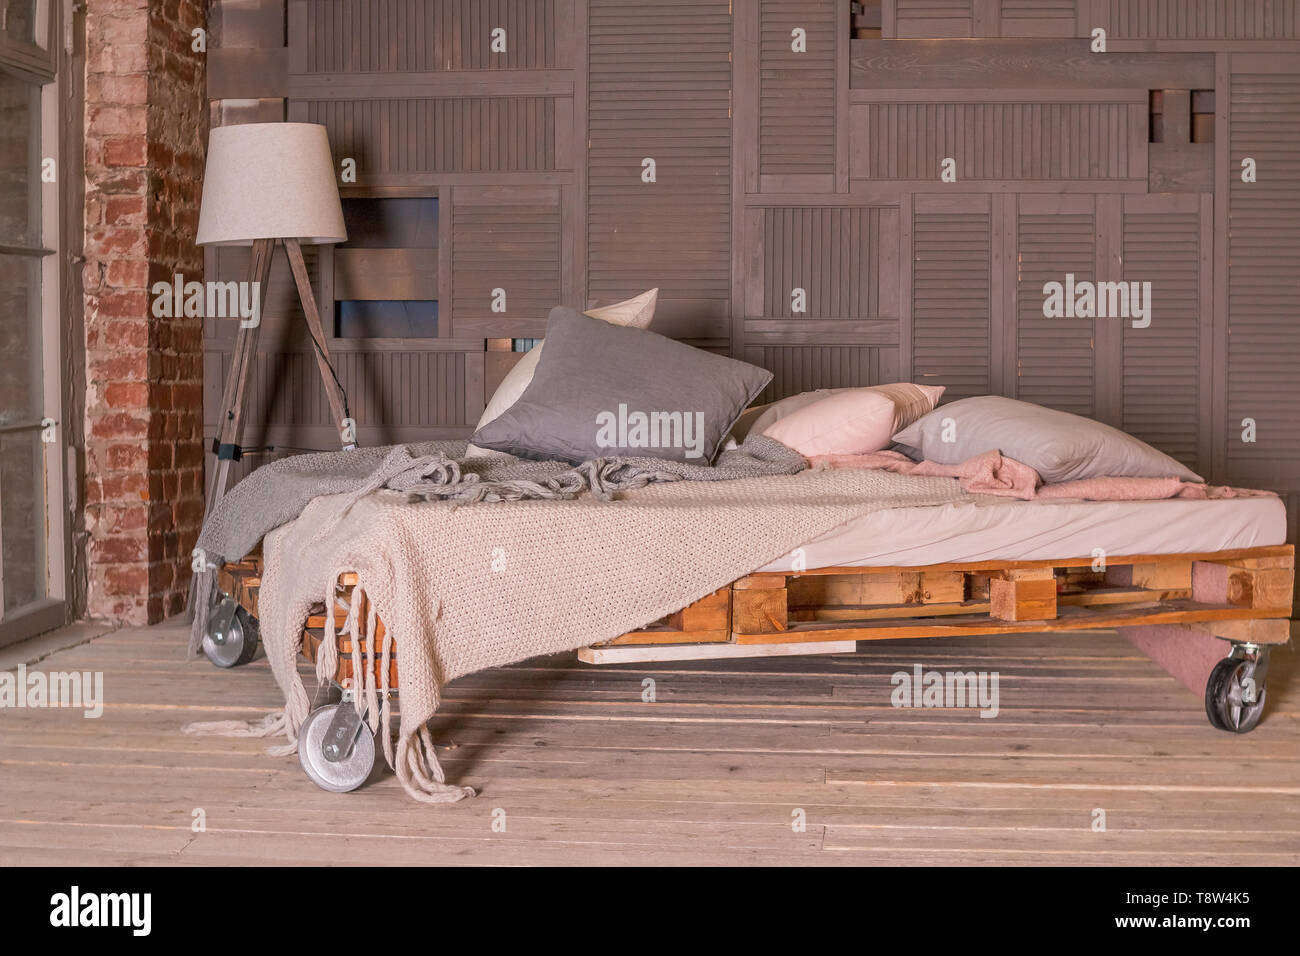 Loft Apartment Interior Minimalist Interior With Simple Wooden Bed Lamp Big Window Stylish Bedroom In Loft Style Pastel Colors Copy Space Stock Photo Alamy